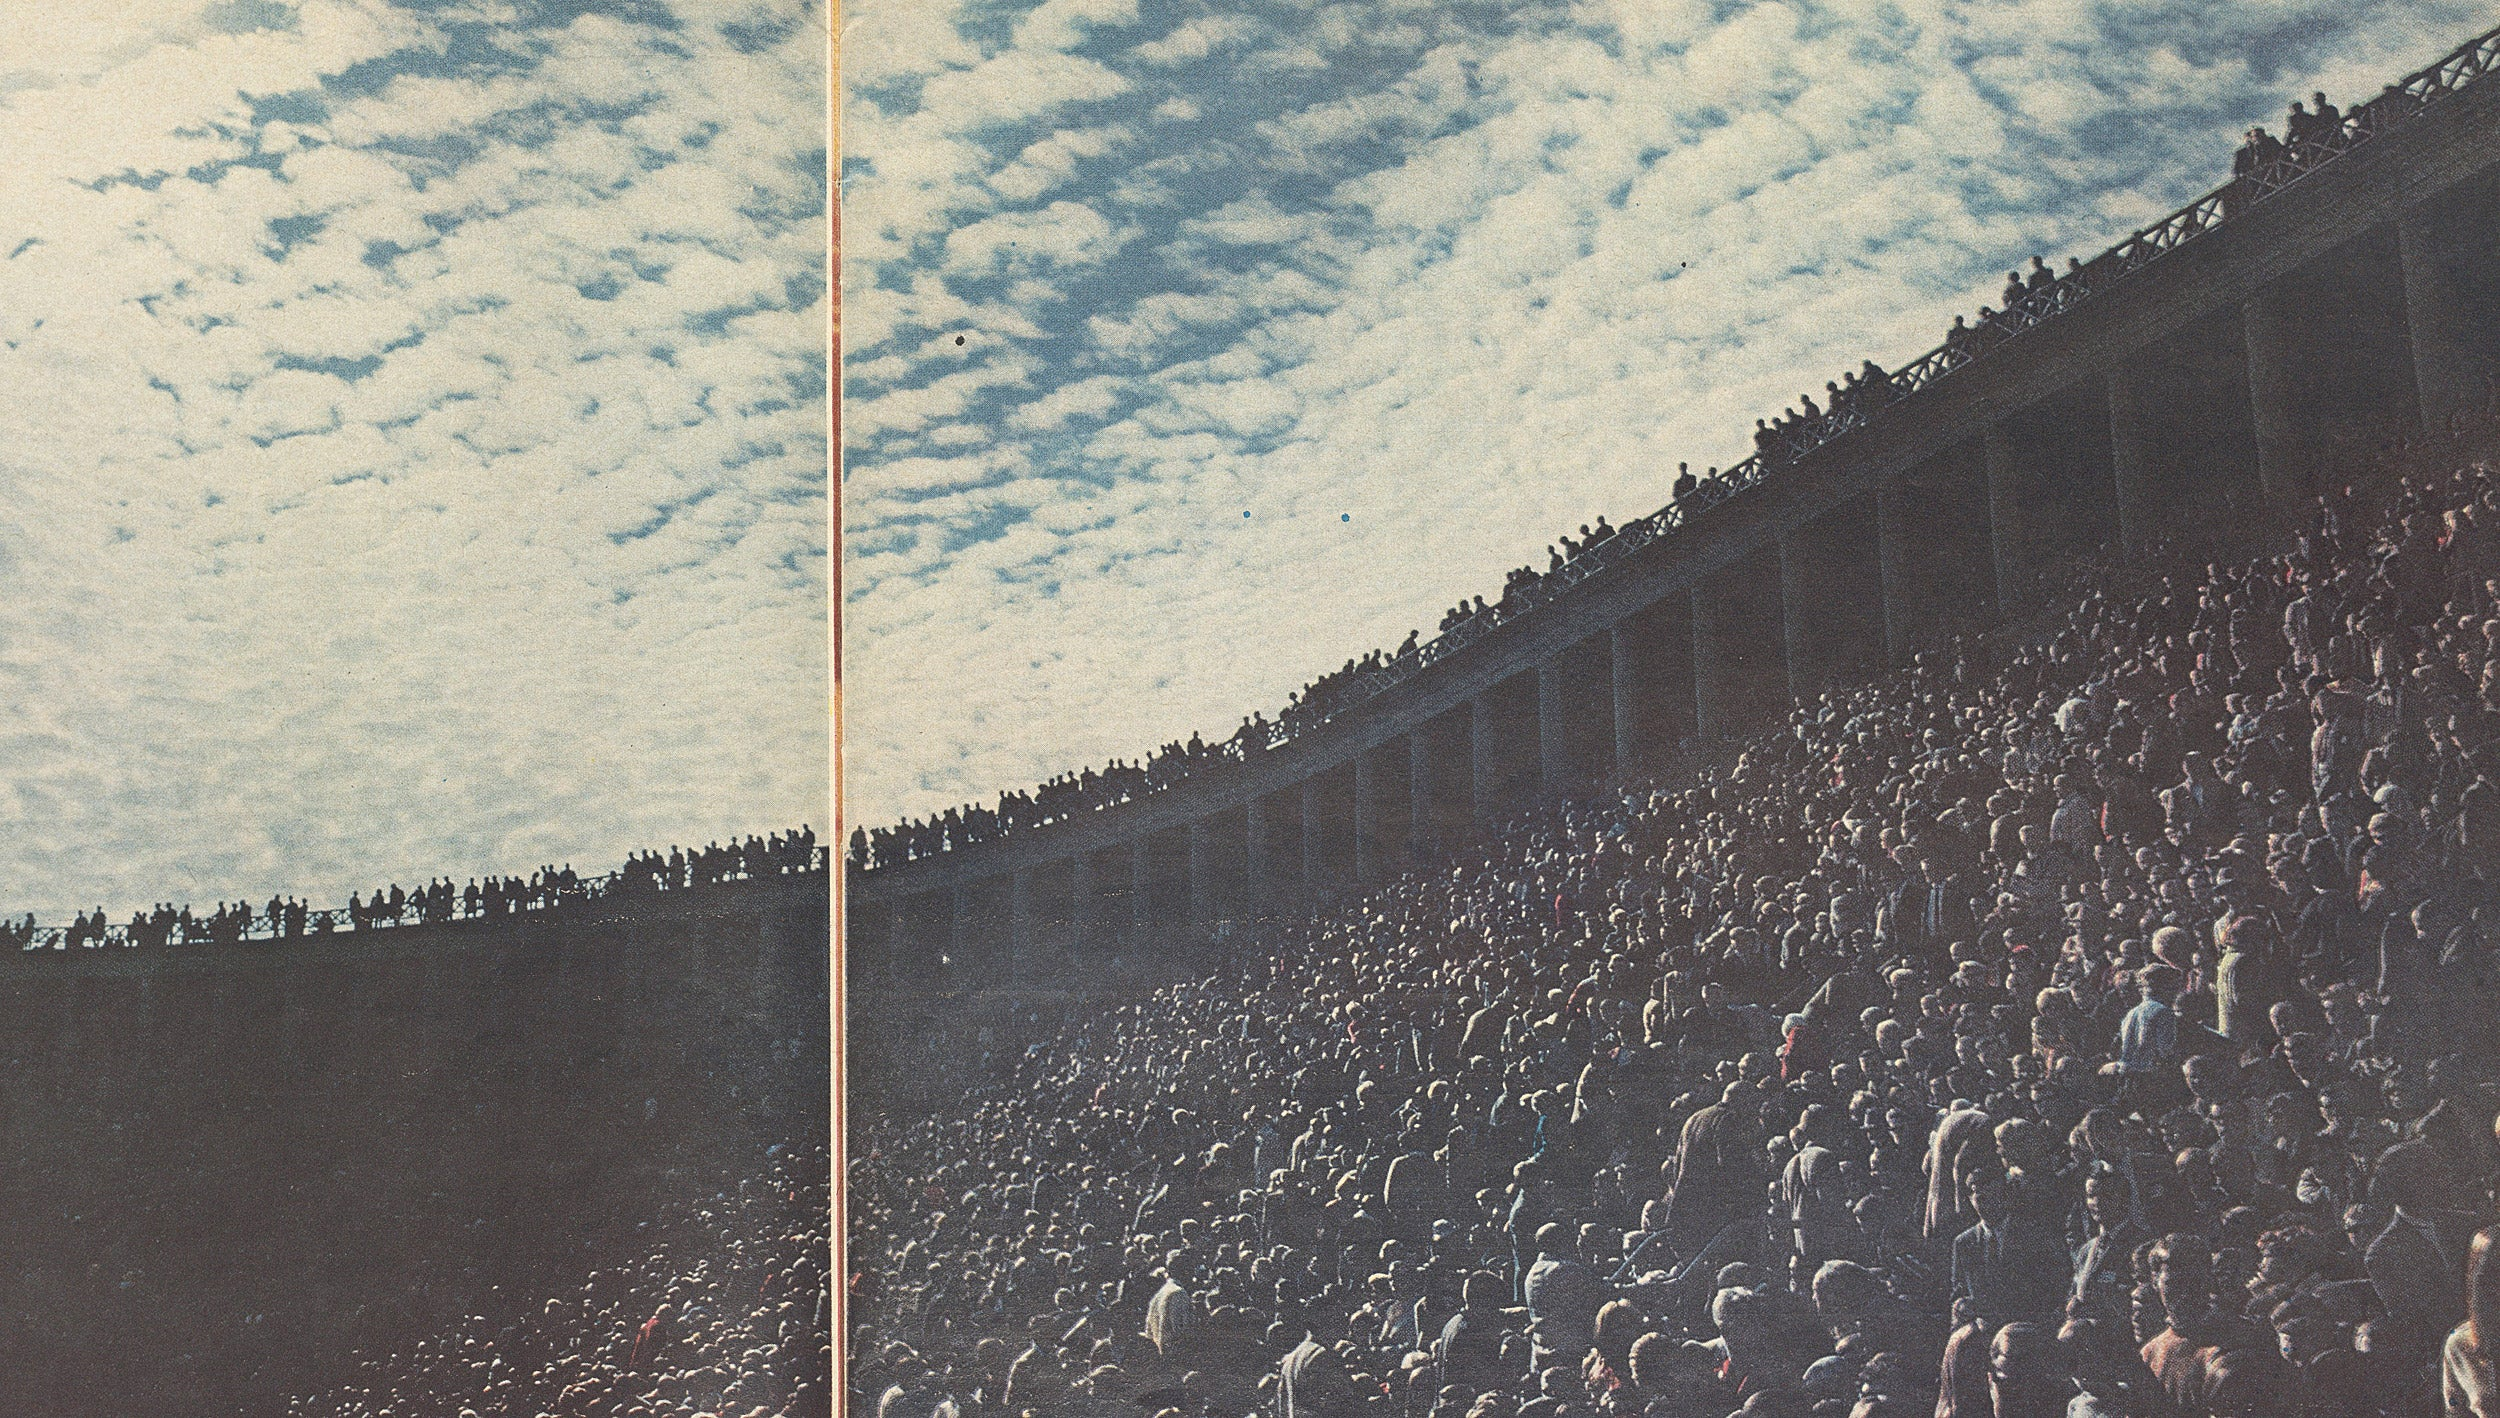 Students filled Harvard Stadium for a rally.